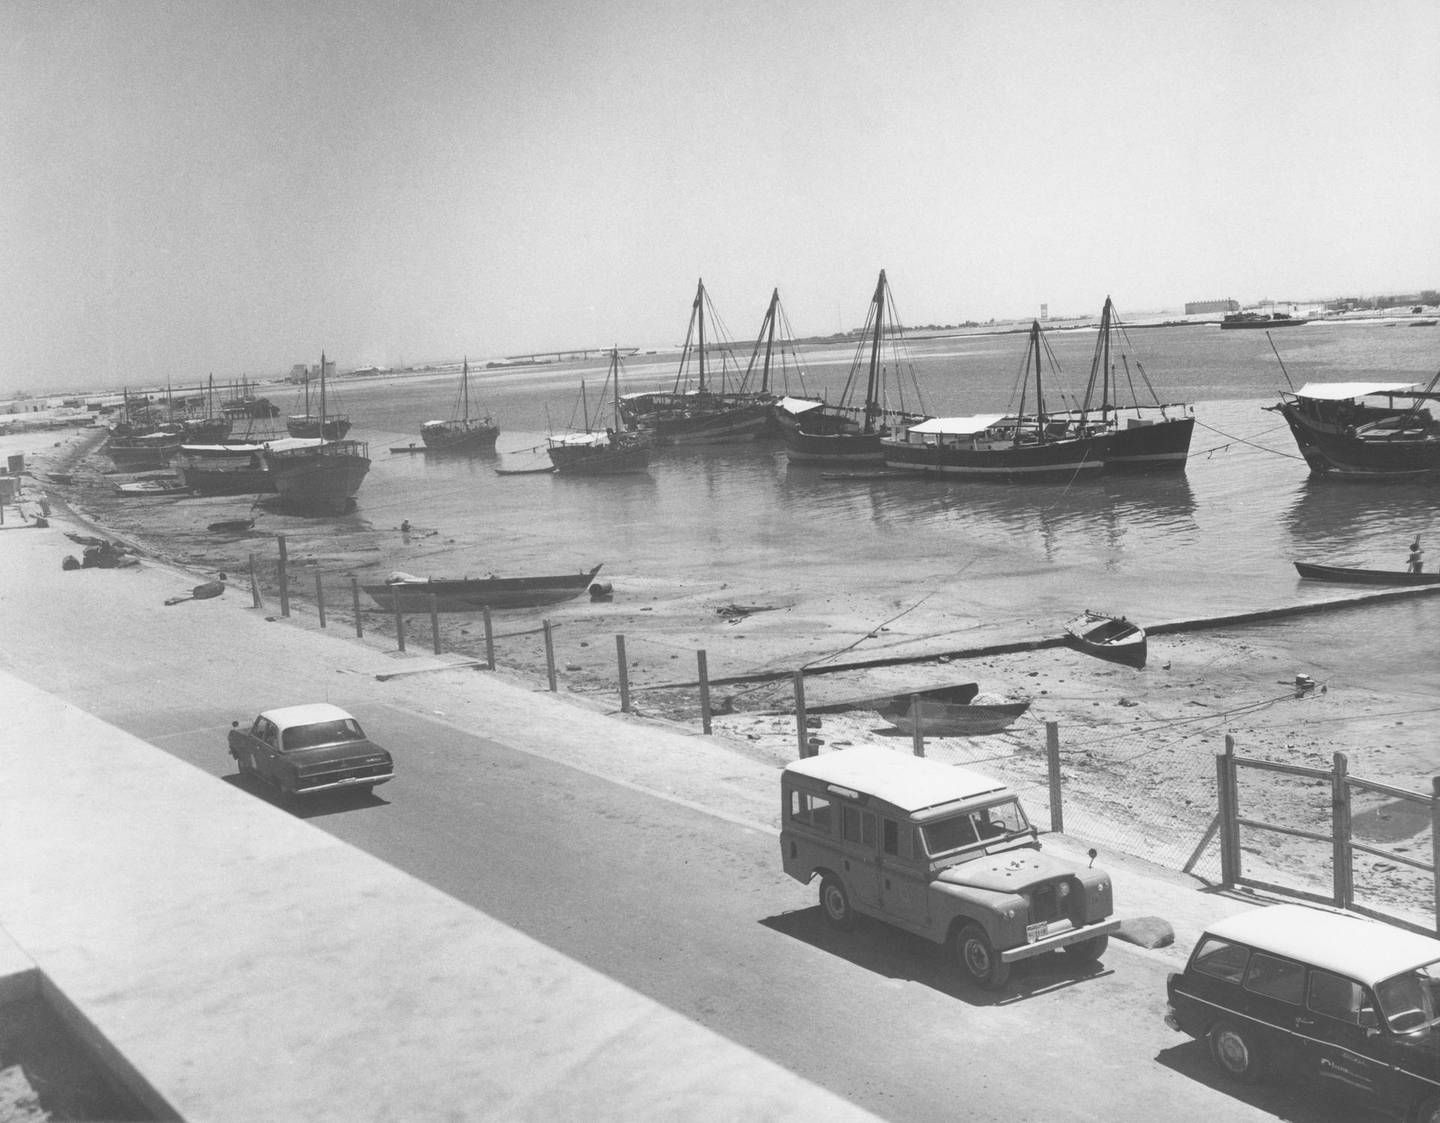 Low tide on the Creek in Dubai, 1967. (Photo by Chris Ware/Keystone Features/Hulton Archive/Getty Images)